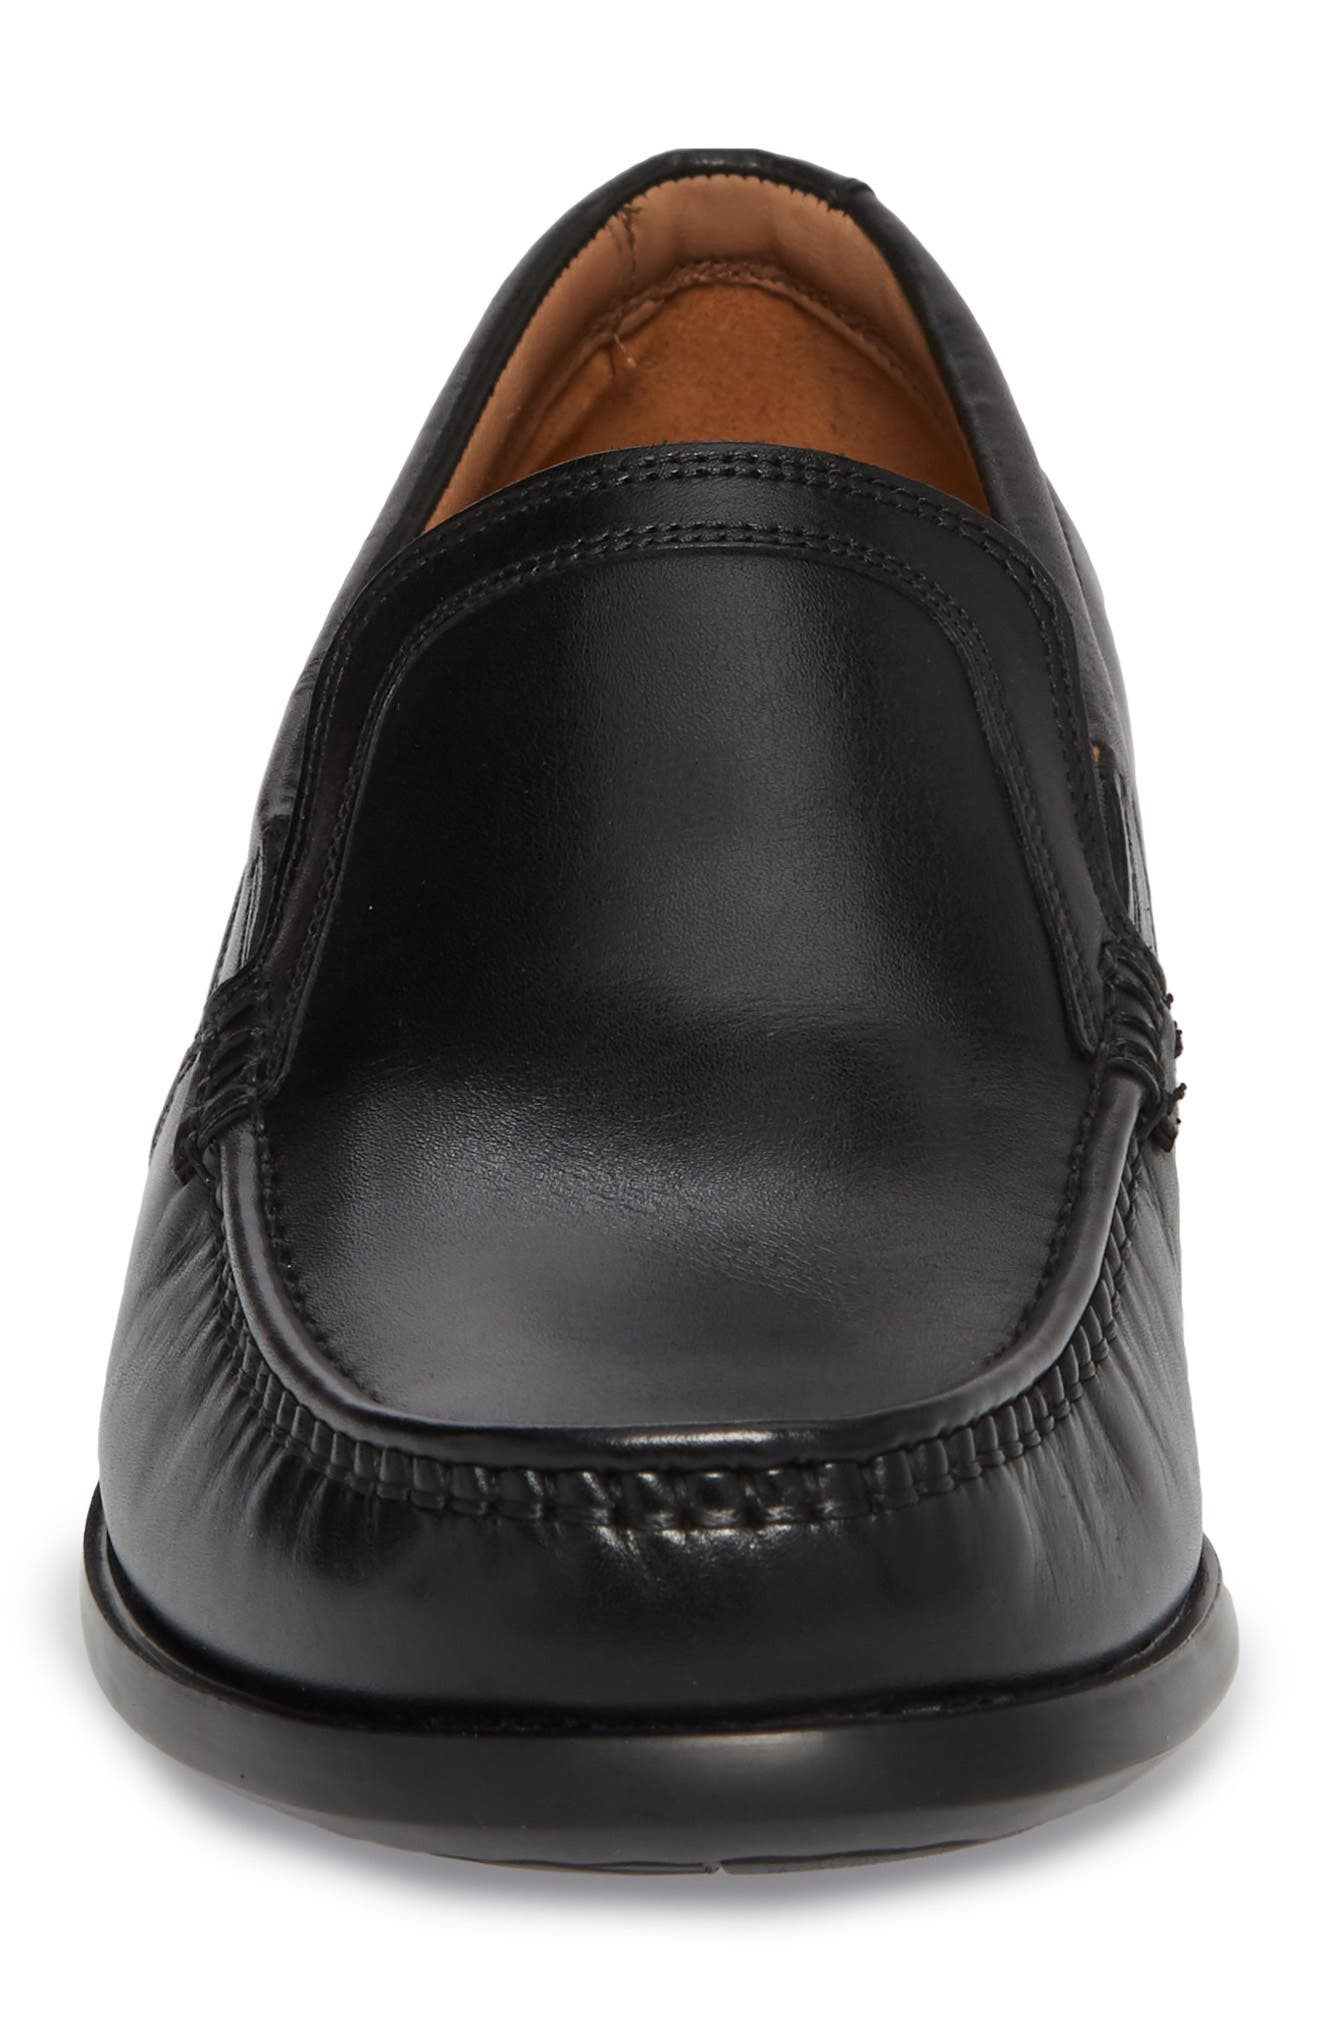 Clarks<sup>®</sup> Ungala Free Venetian Loafer,                             Alternate thumbnail 4, color,                             003